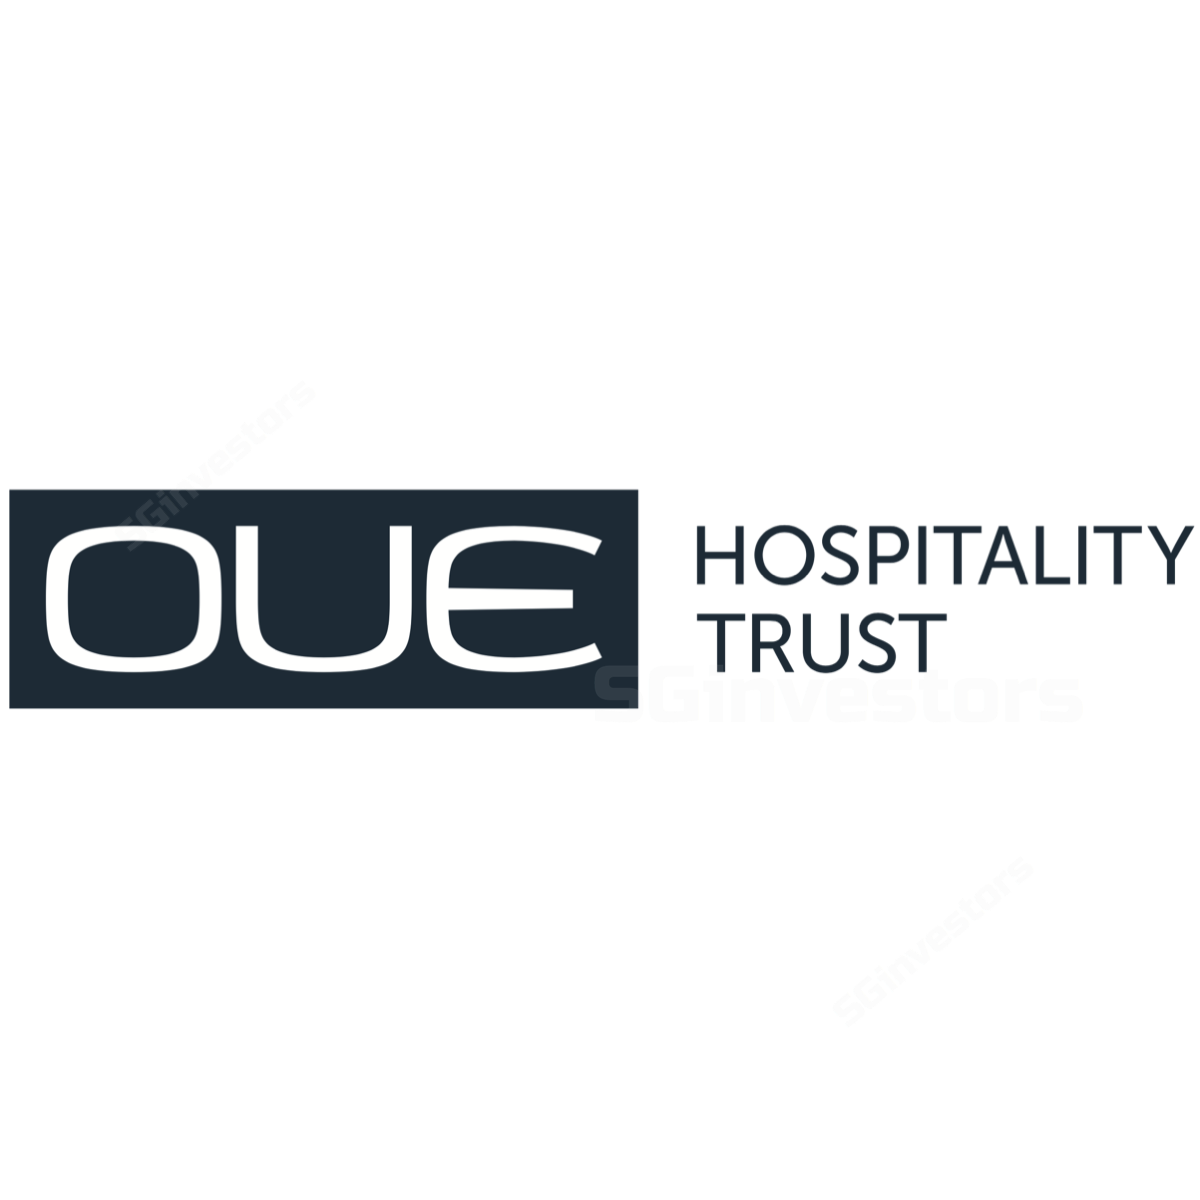 OUE Hospitality Trust - OCBC Investment Research 2018-07-31: Resilient Performance In 2q